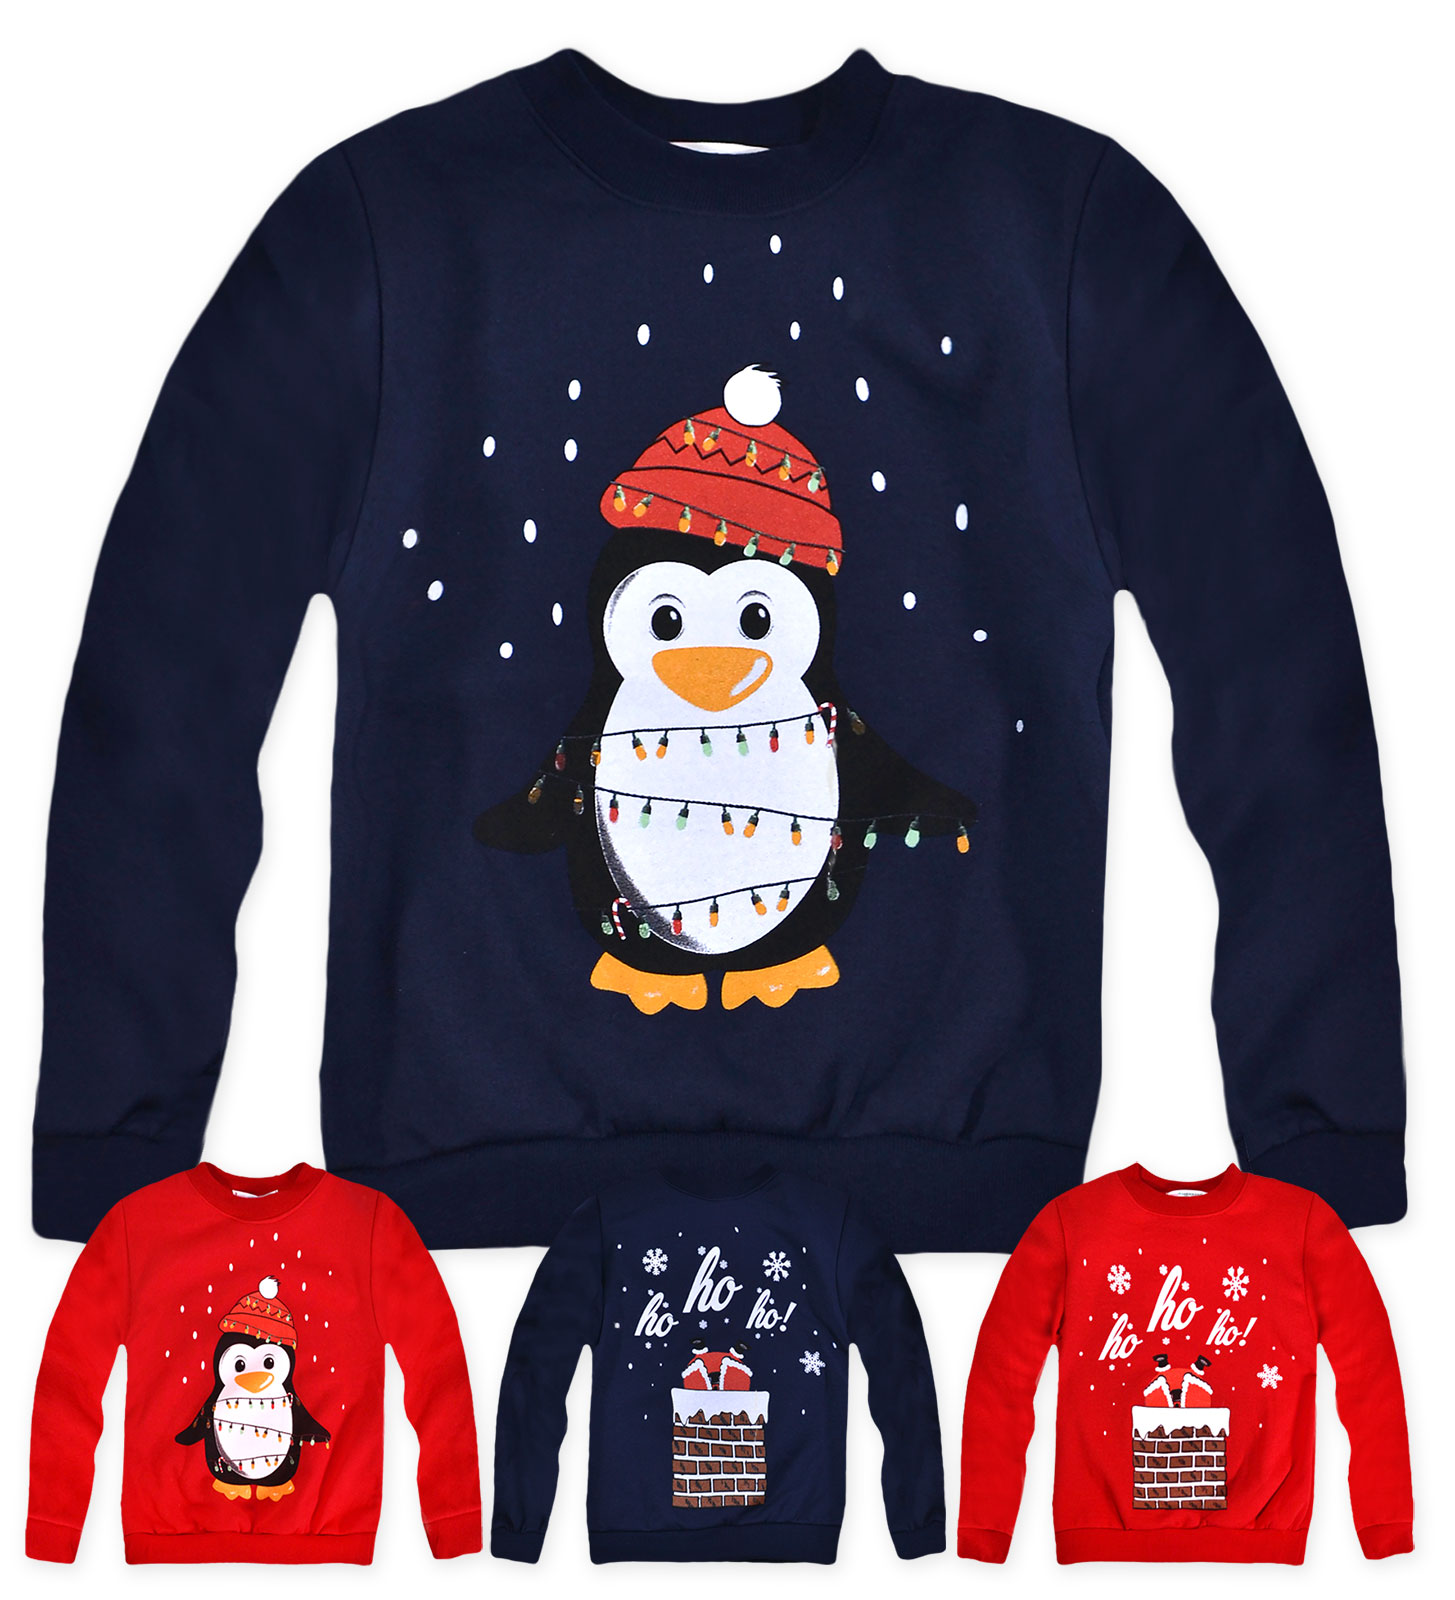 Christmas jumper new boys girls xmas santa penguin sweatshirt ages 3